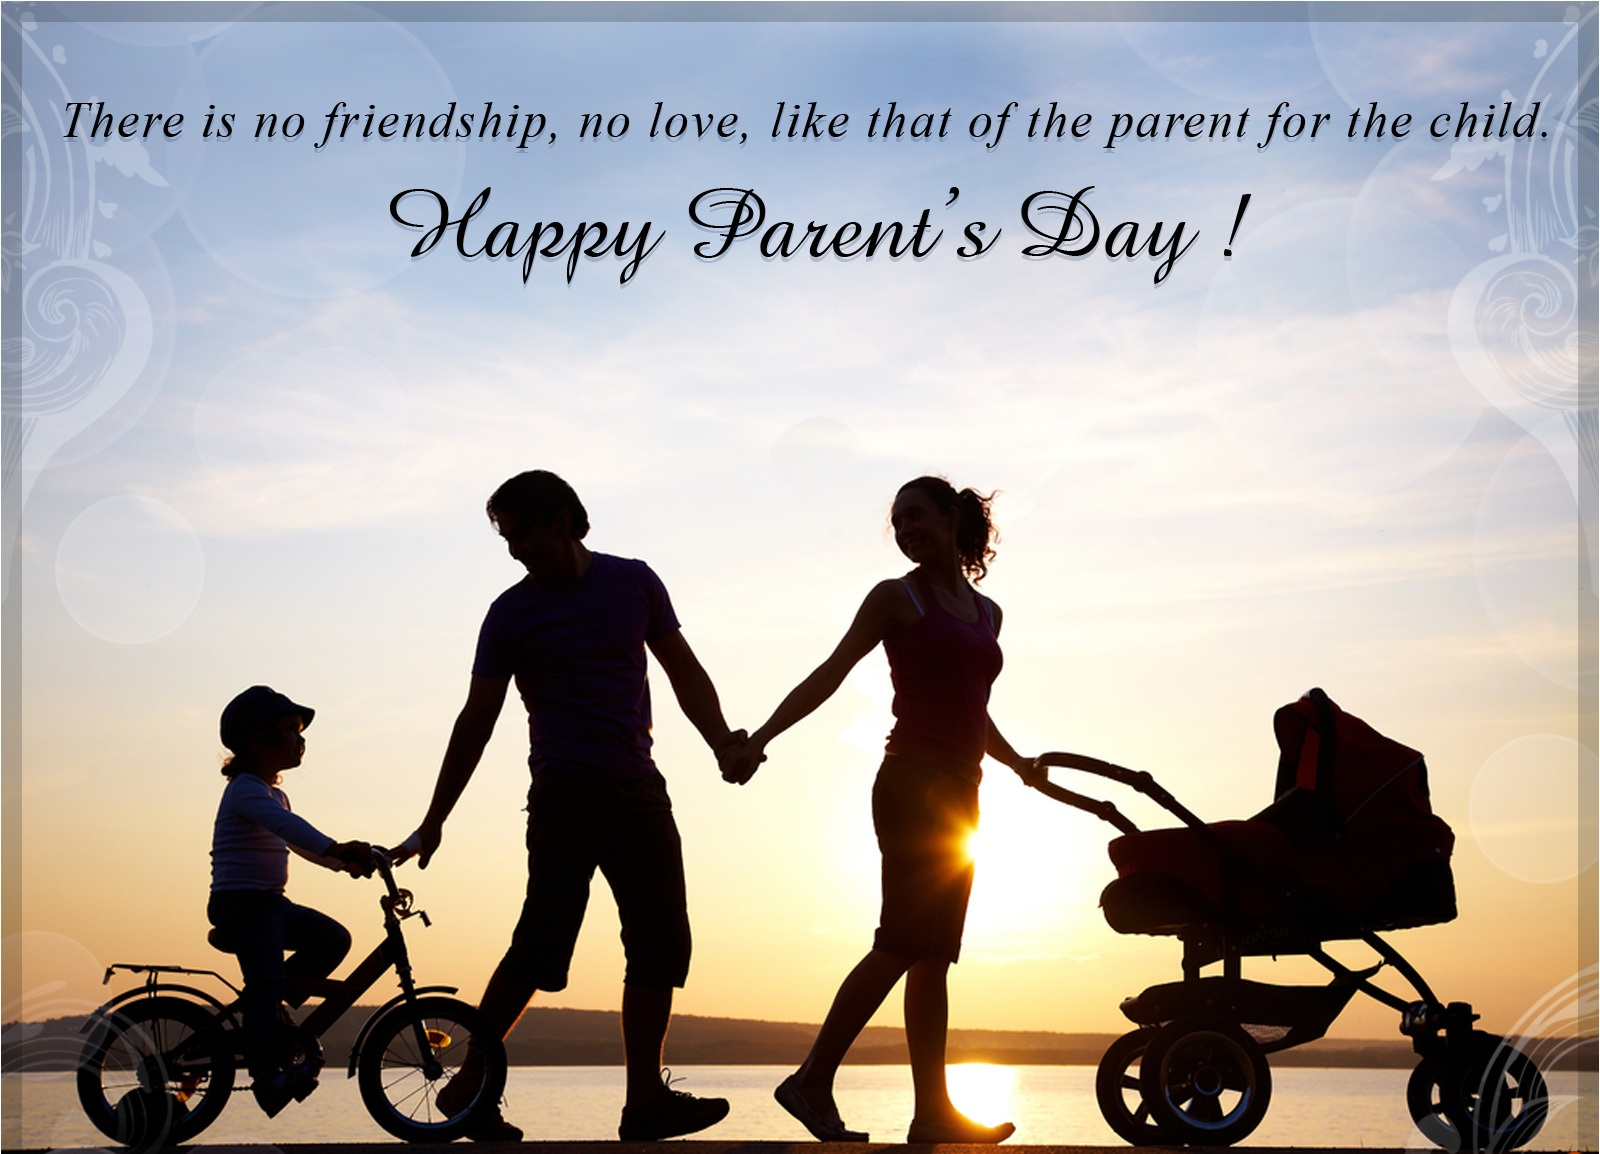 parents-day-images-4